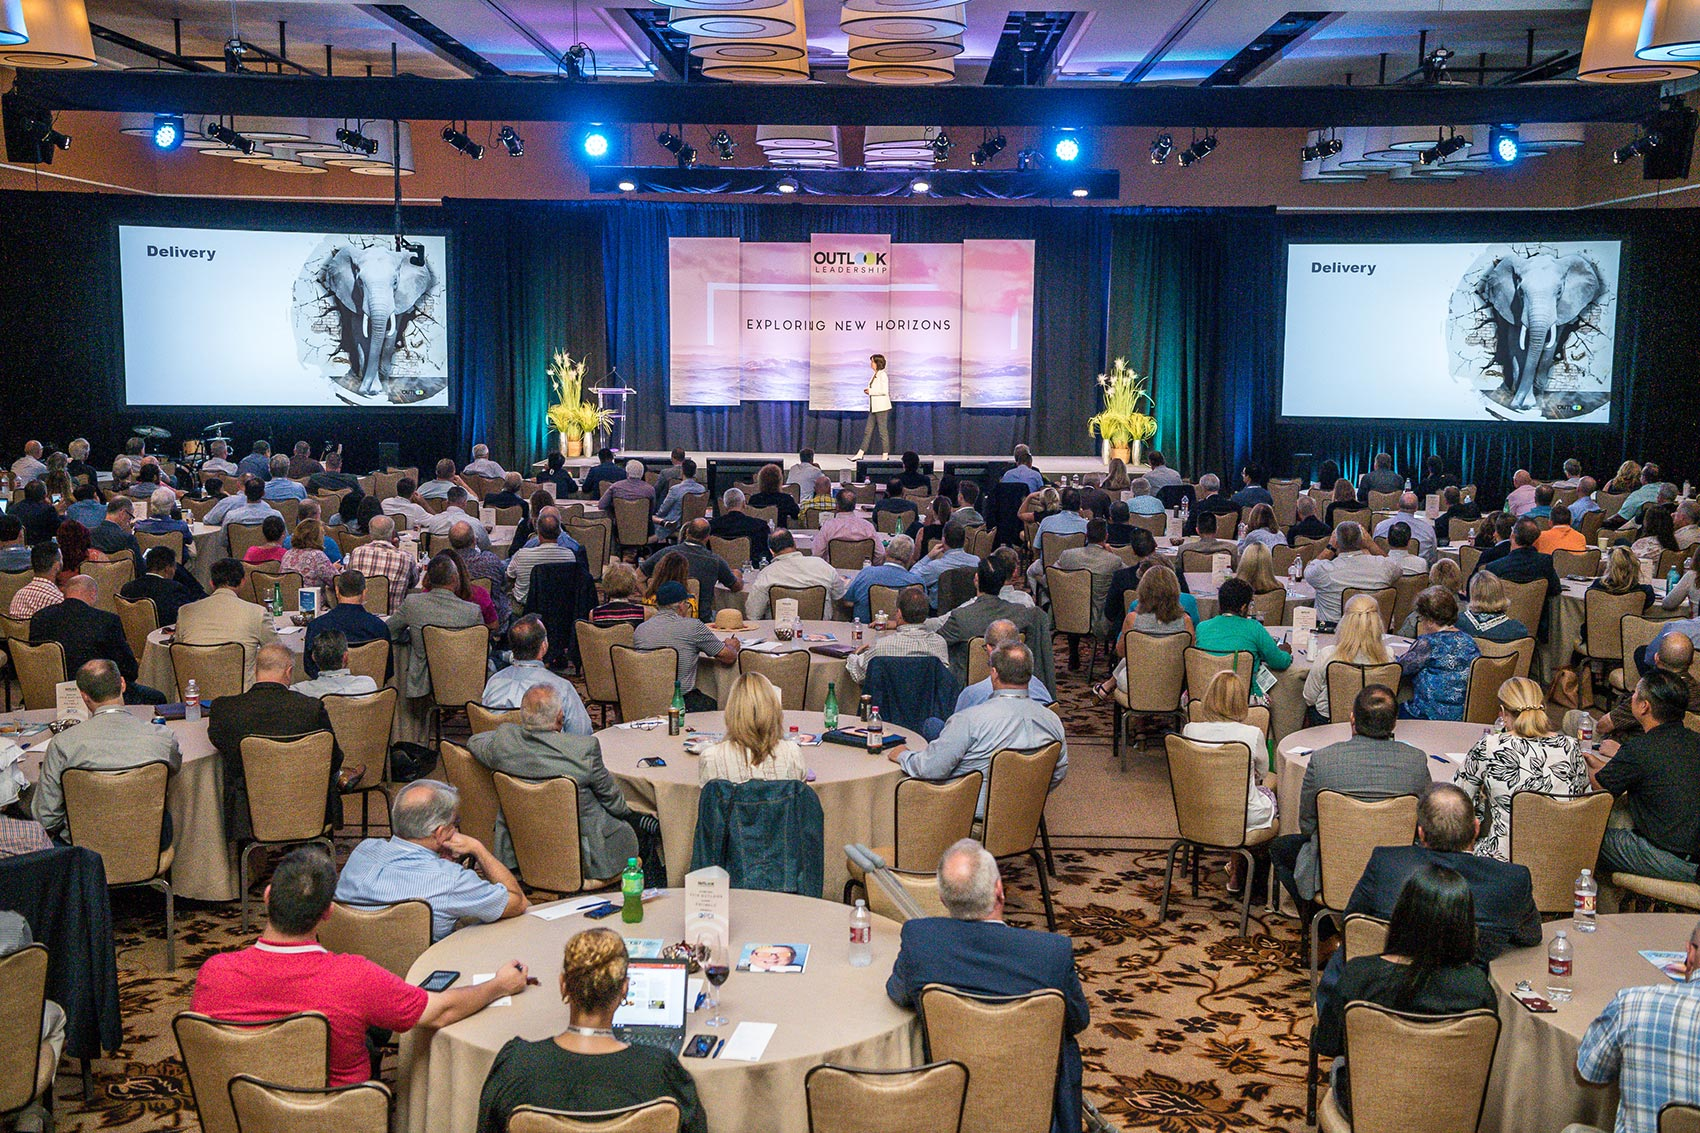 Outlook Leadership Conference - Event Info